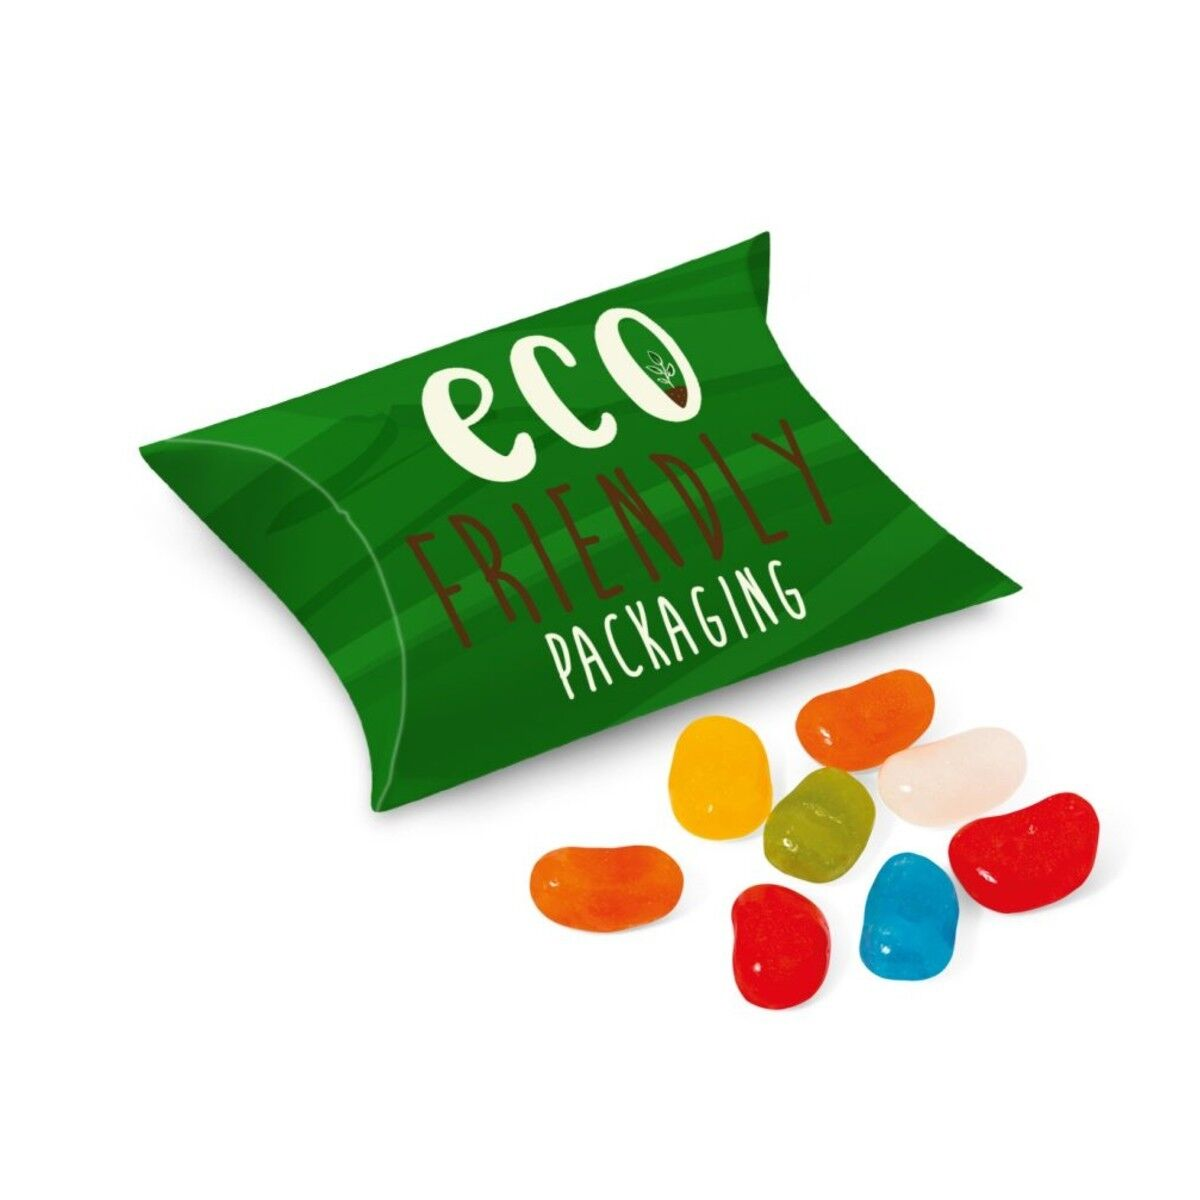 Biodegradable Card Pouch filled with Jelly Beans